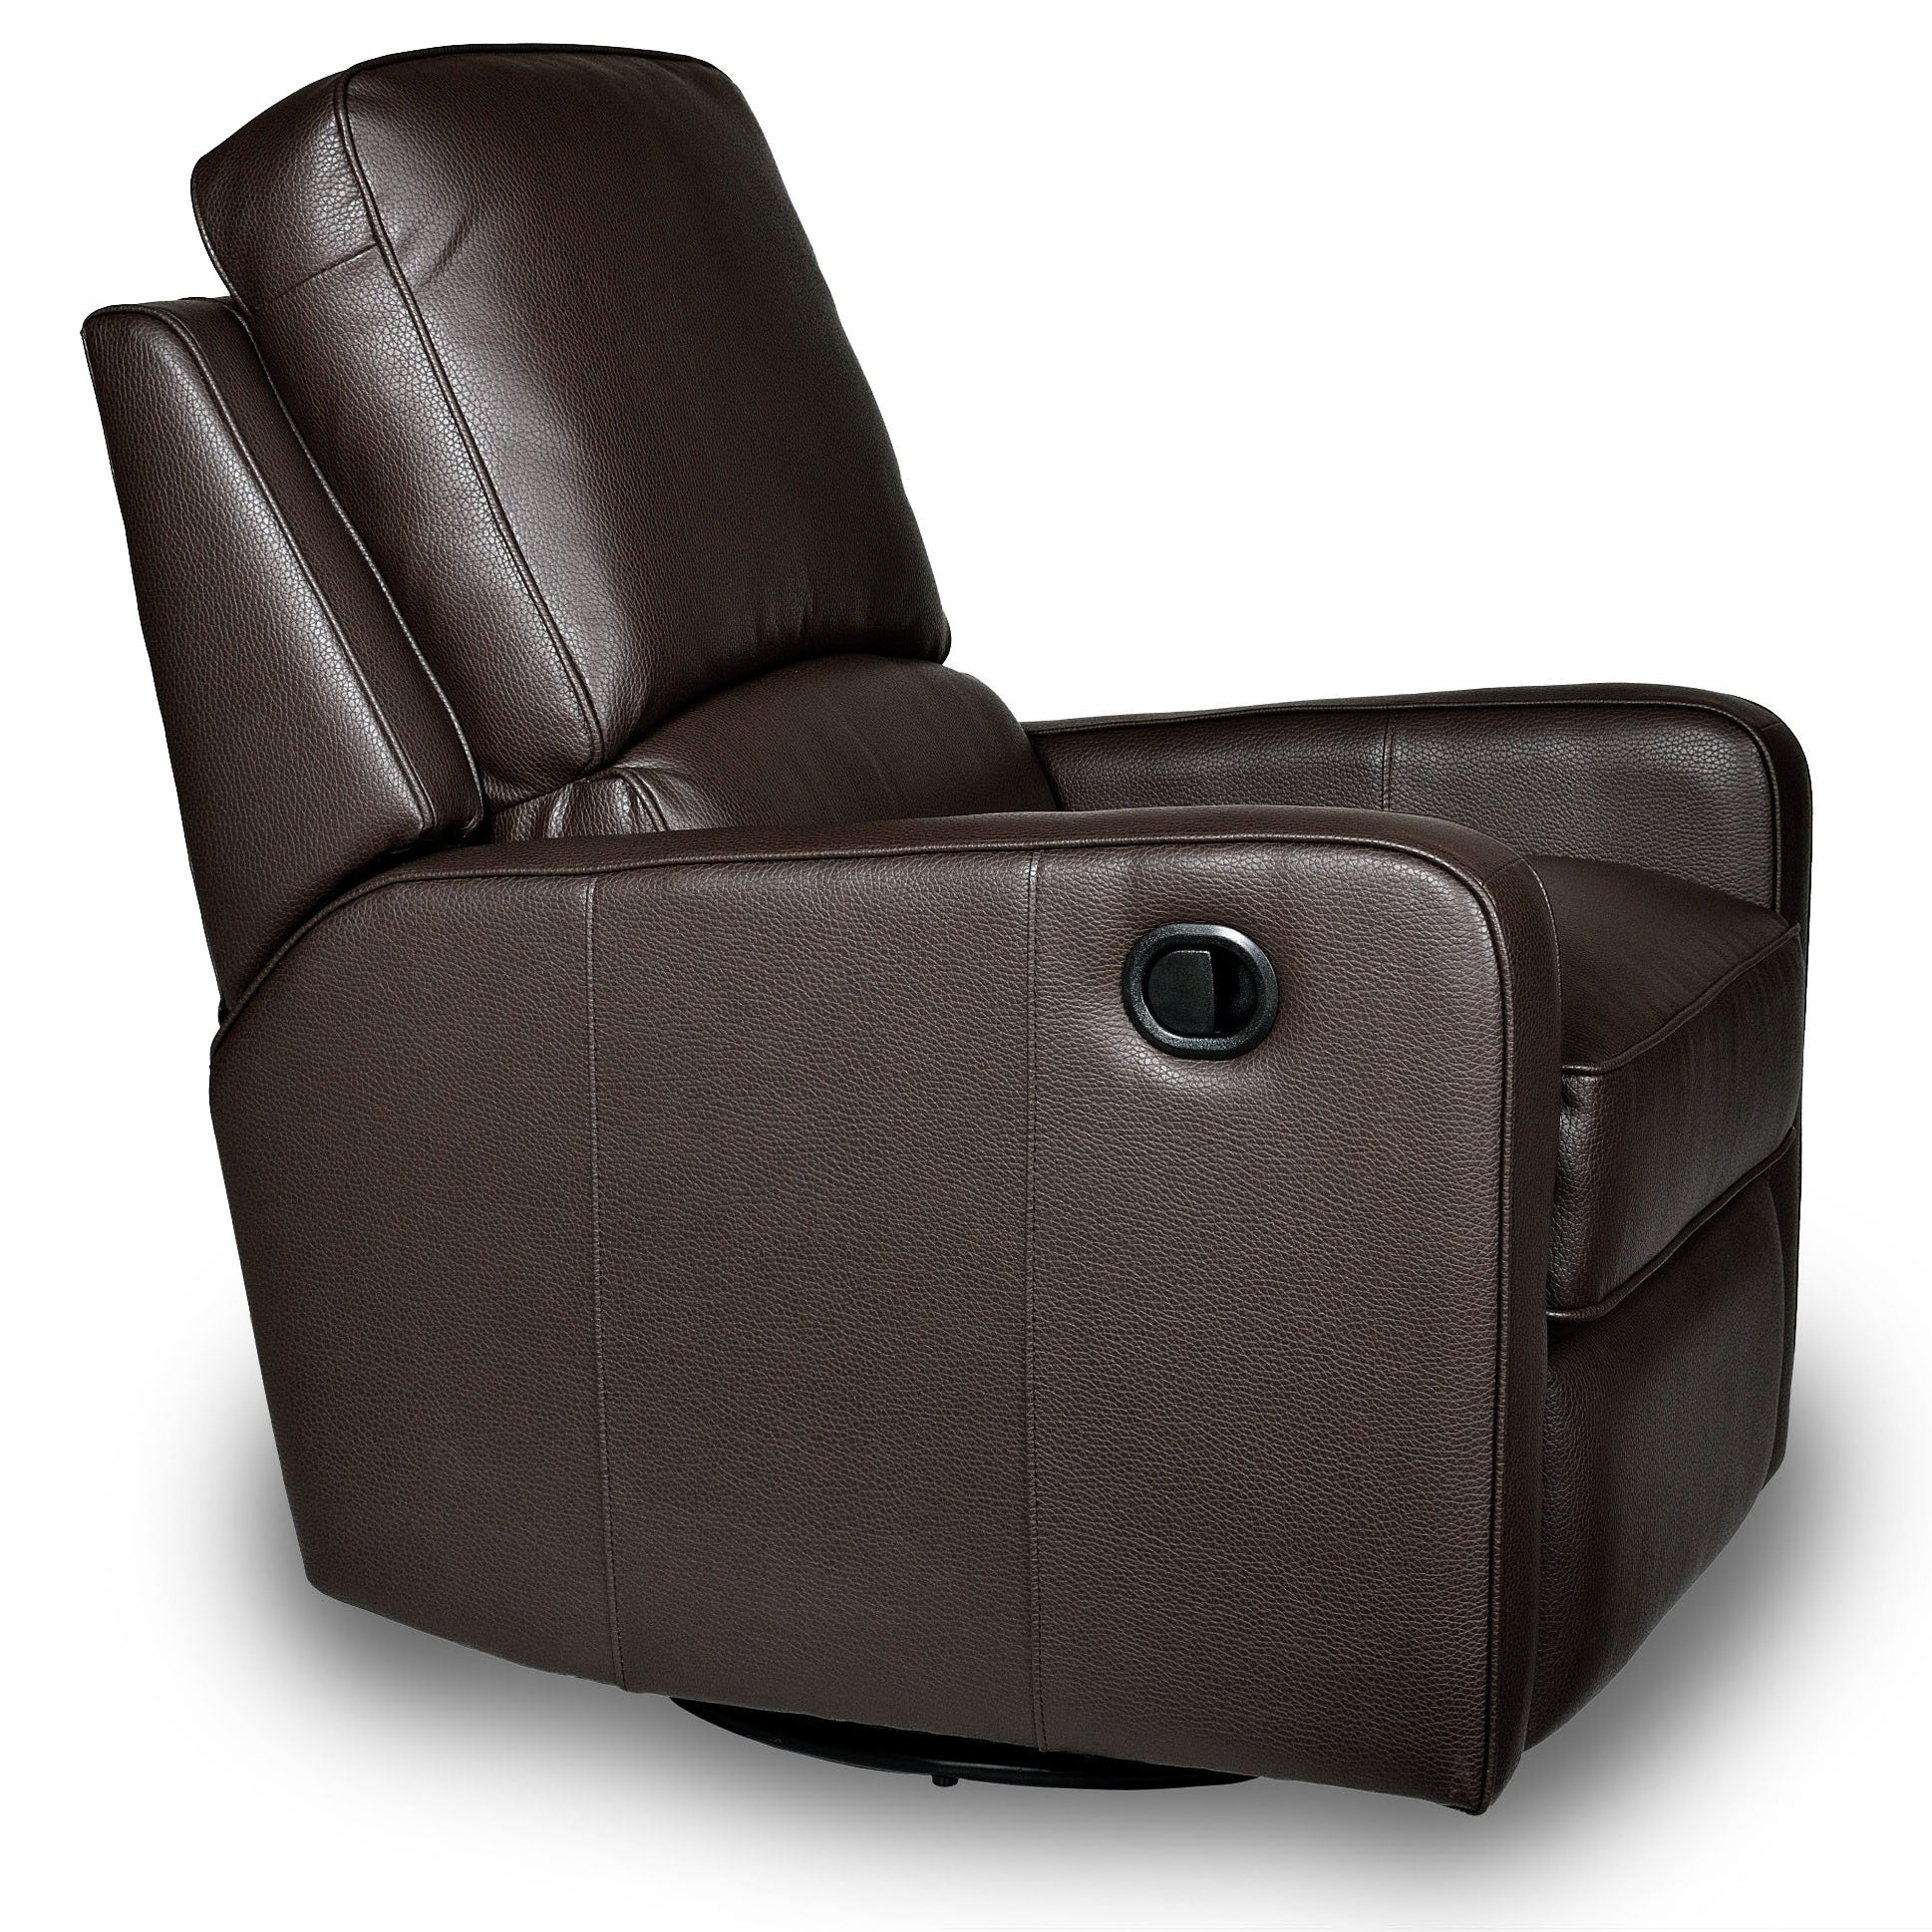 chair nursery furniture rocking recliner free rocker small cheap chairs ottoman swivel stress the with experience glider